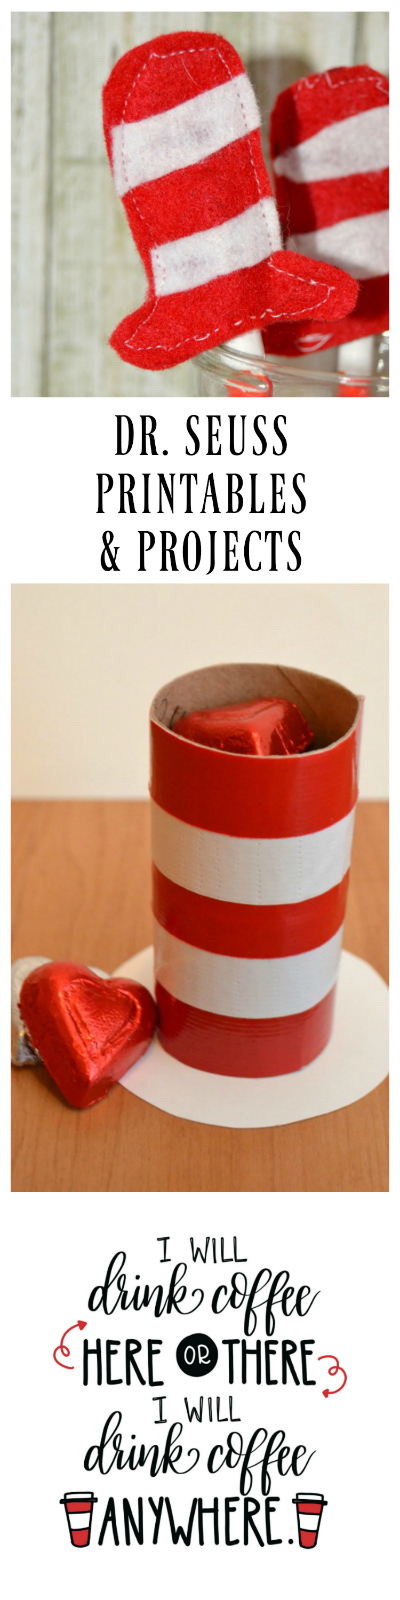 Dr. Seuss Printables & Projects